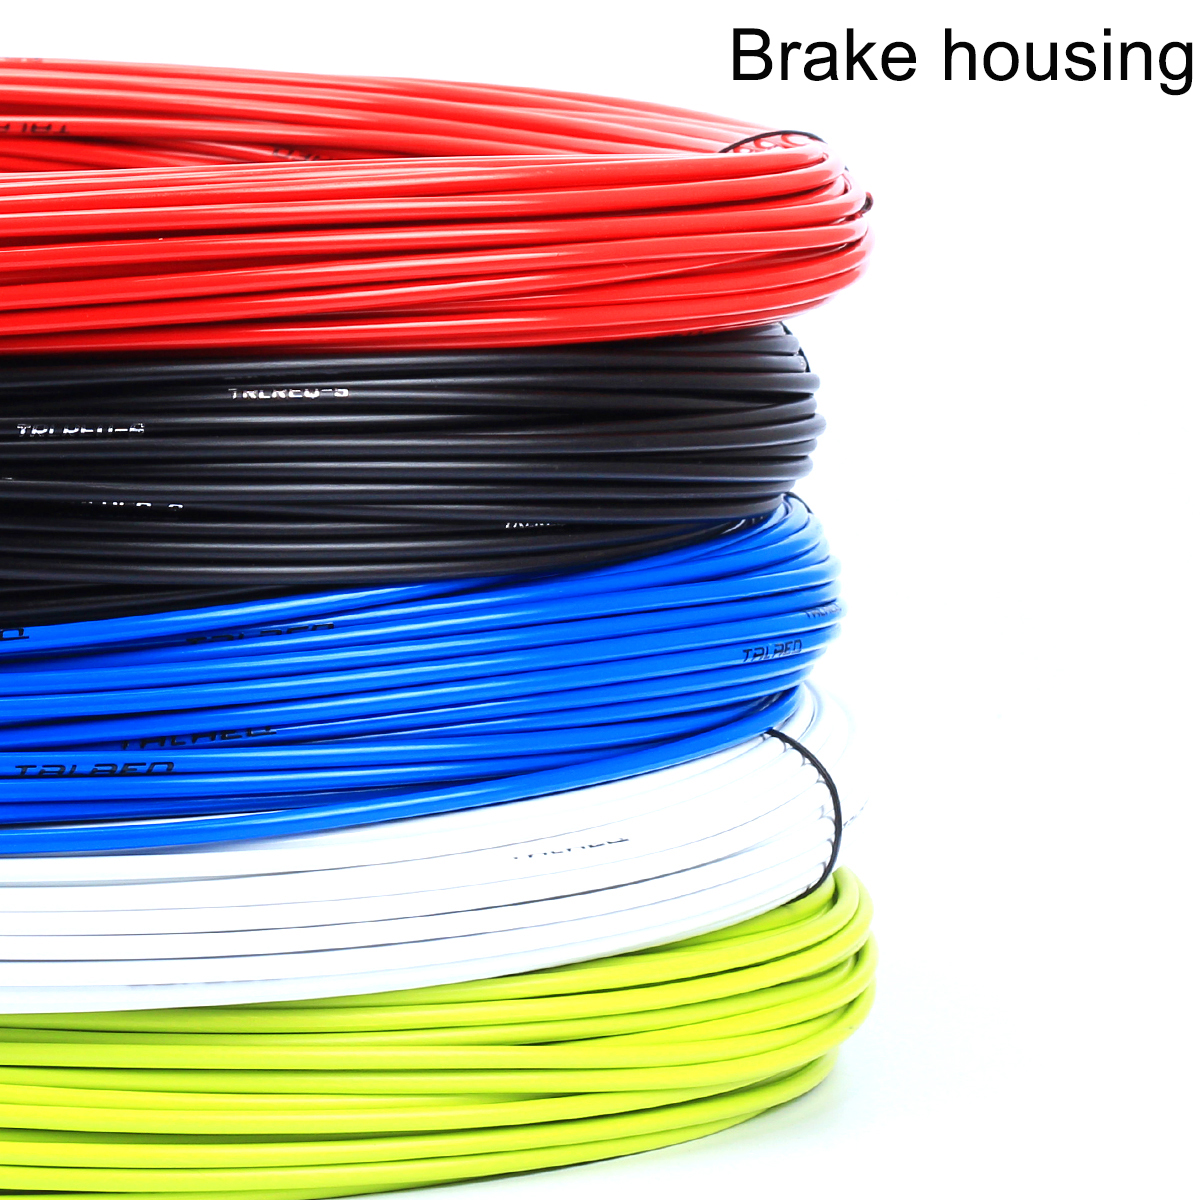 2 cables//Interior Trains Teflon coated for Brake 1,5 MM with Pear Nipple